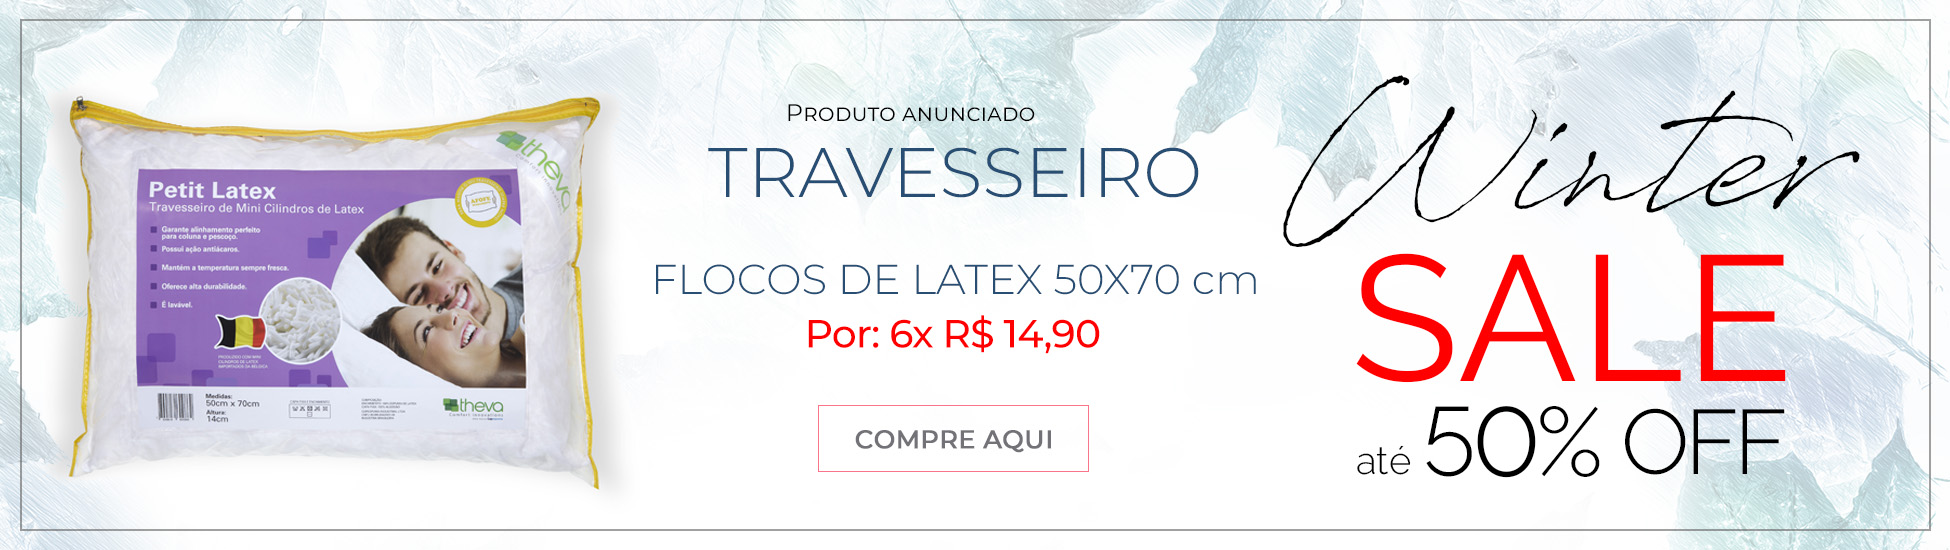 Winter Salle Travesseiros